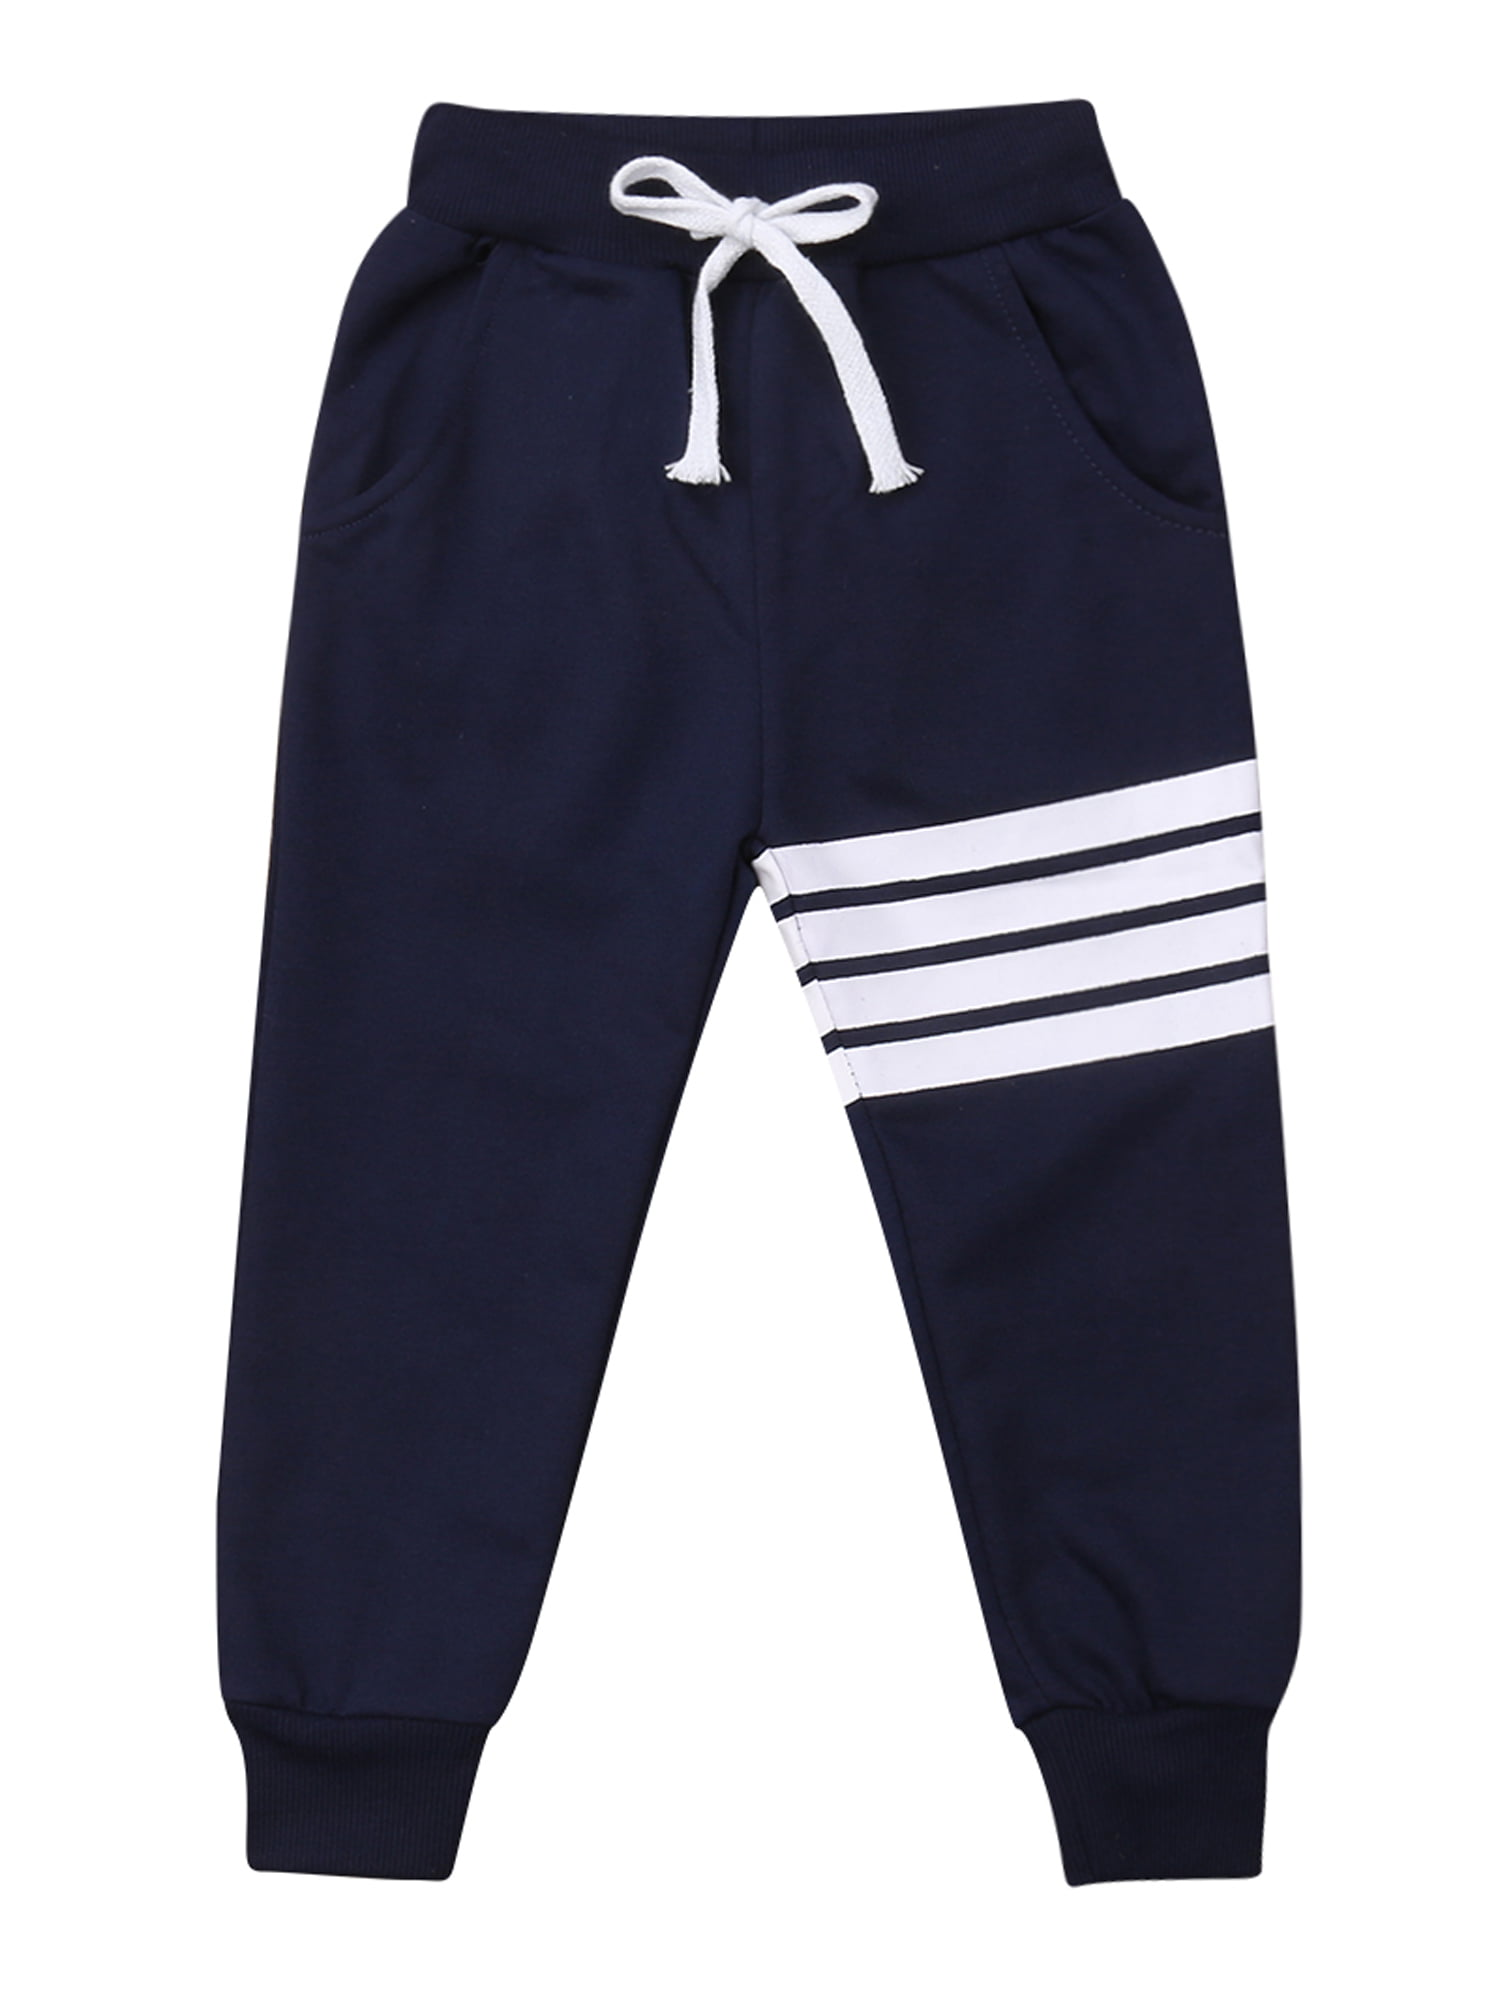 Russell Athletic Kids Children/'s Boys Girls School Sweat Pants Jogging Bottoms Trousers Uniform